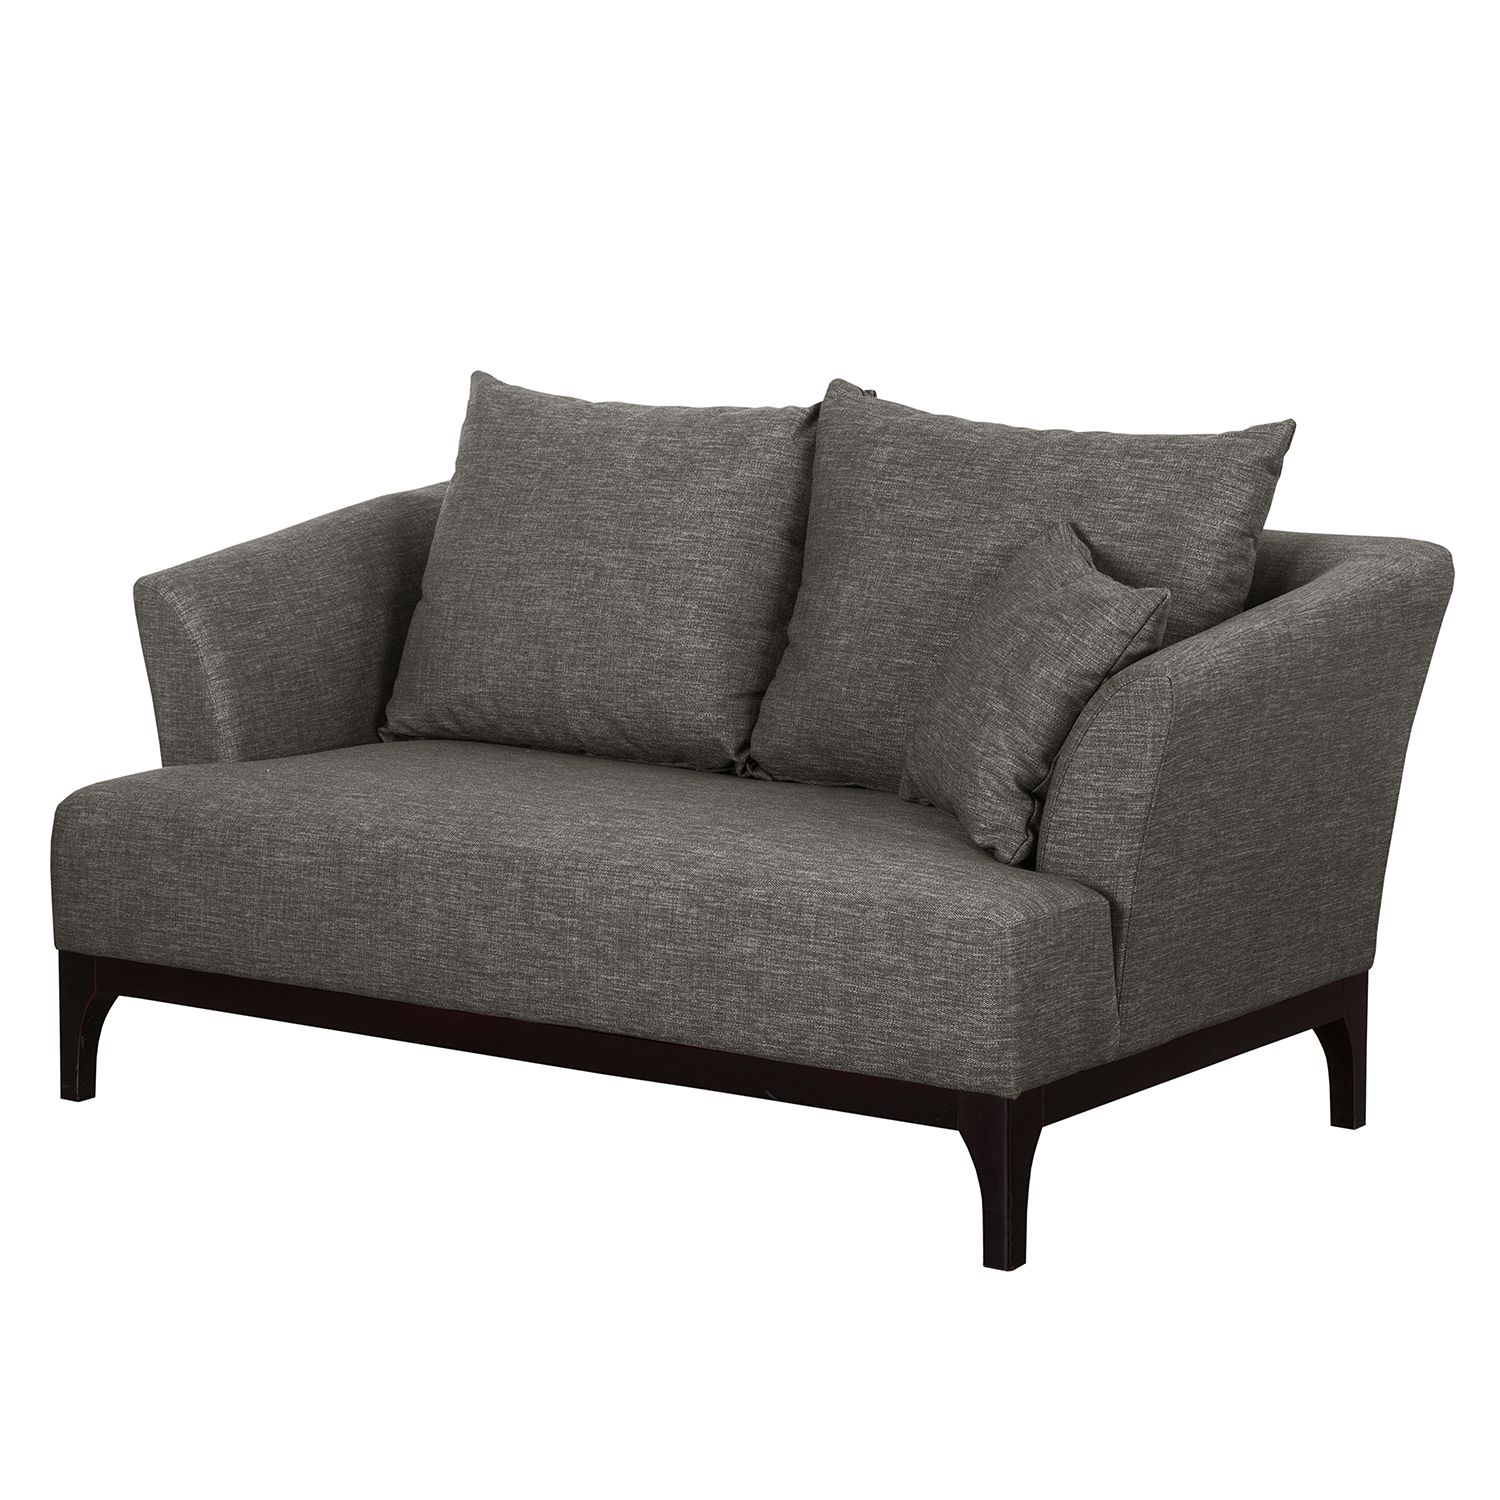 Morteens Sofa Sofa New Dalton 2 Sitzer Webstoff Grau Morteens